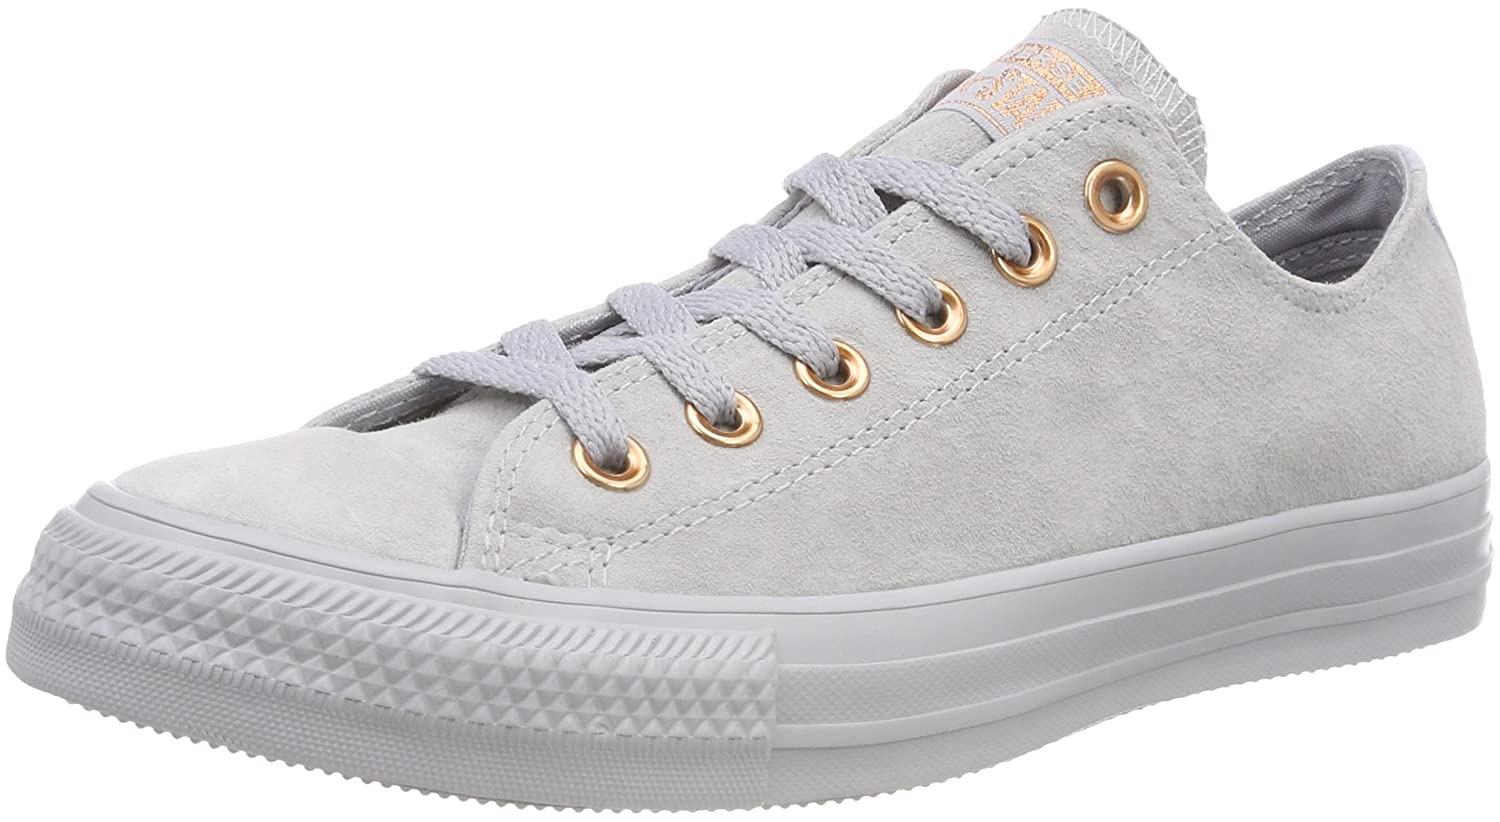 TALLA 35 EU. Converse CTAS Ox Wolf Grey/Blue Chill, Zapatillas Unisex Adulto